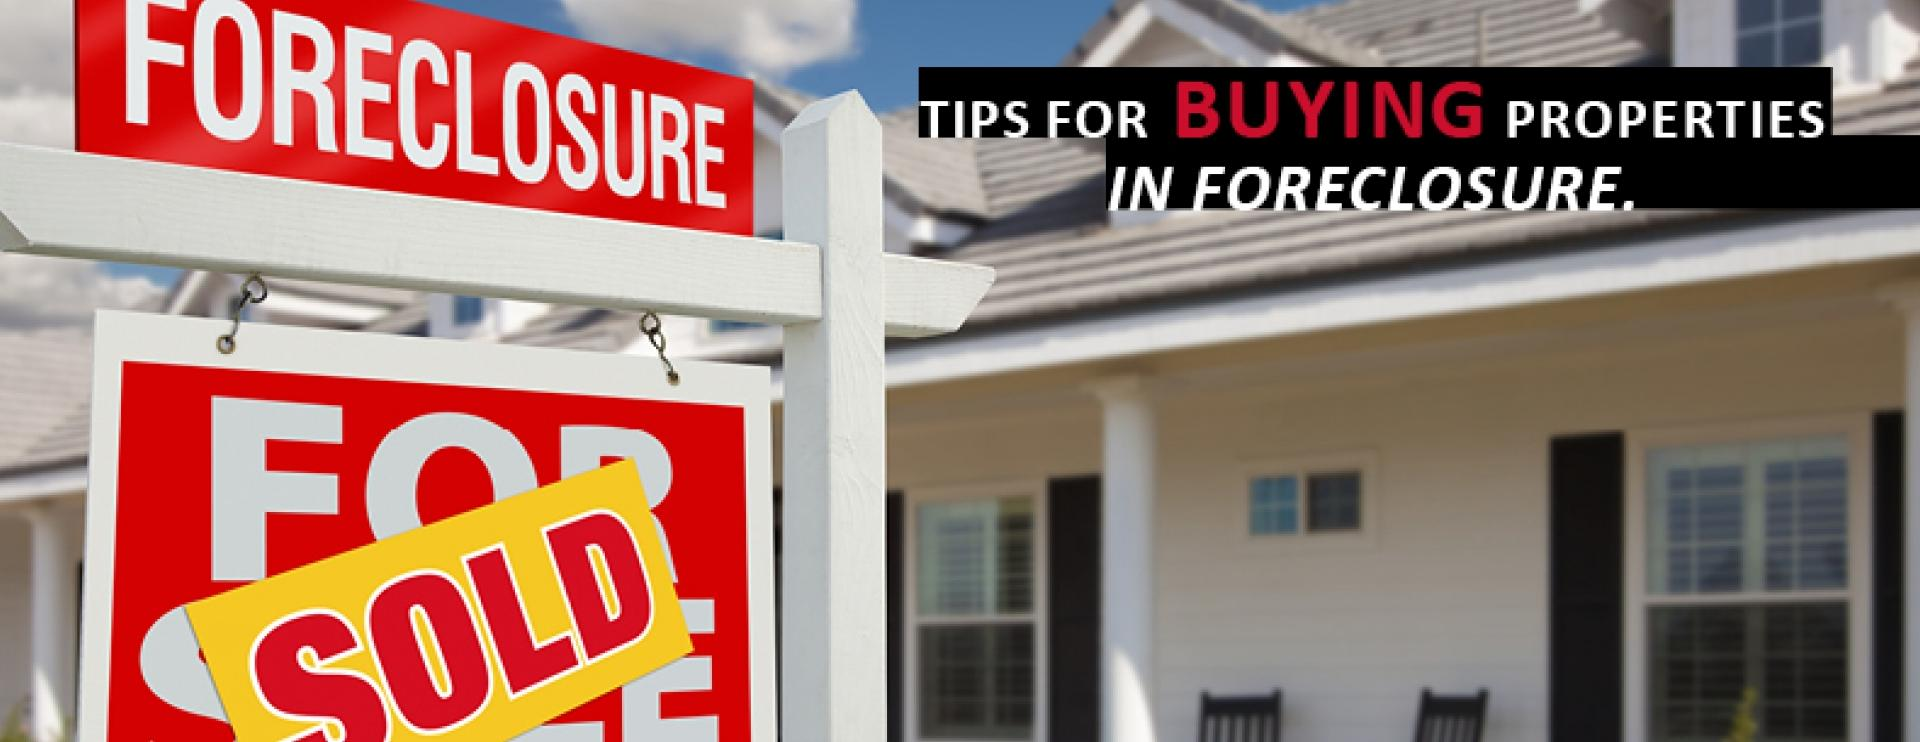 Tips for buying properties in foreclosure